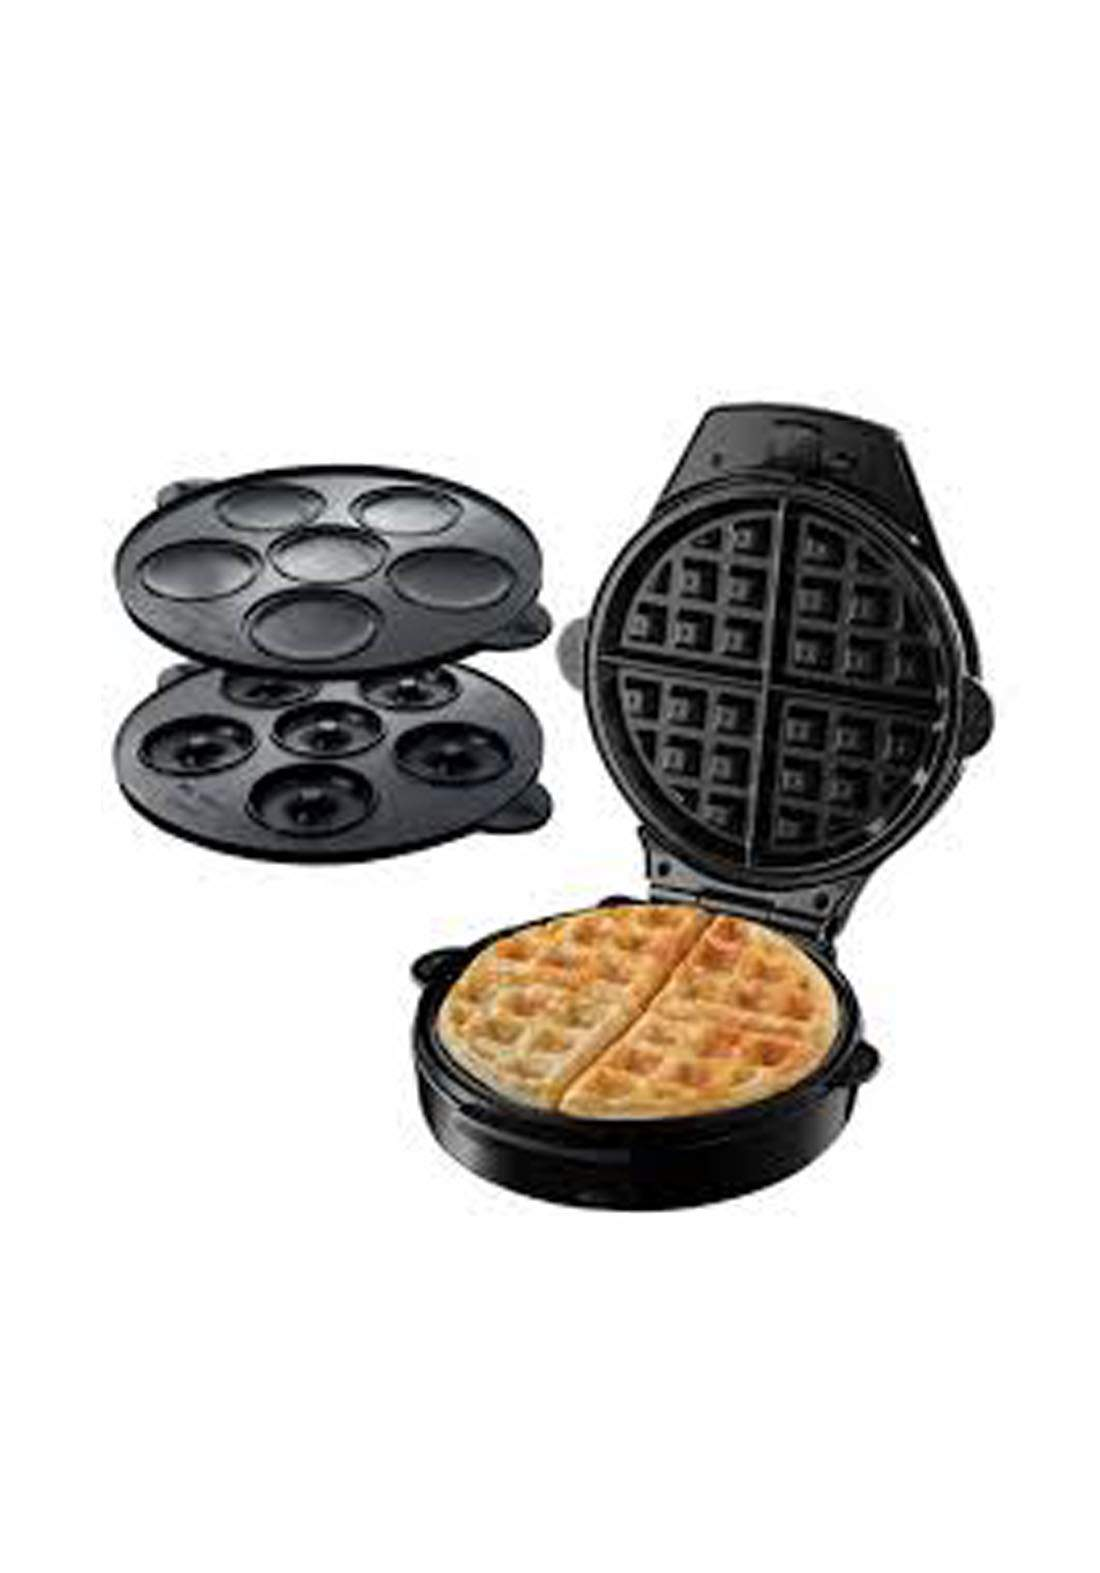 Russell hobbs 24620 Device for preparing Waffles جهاز وافل